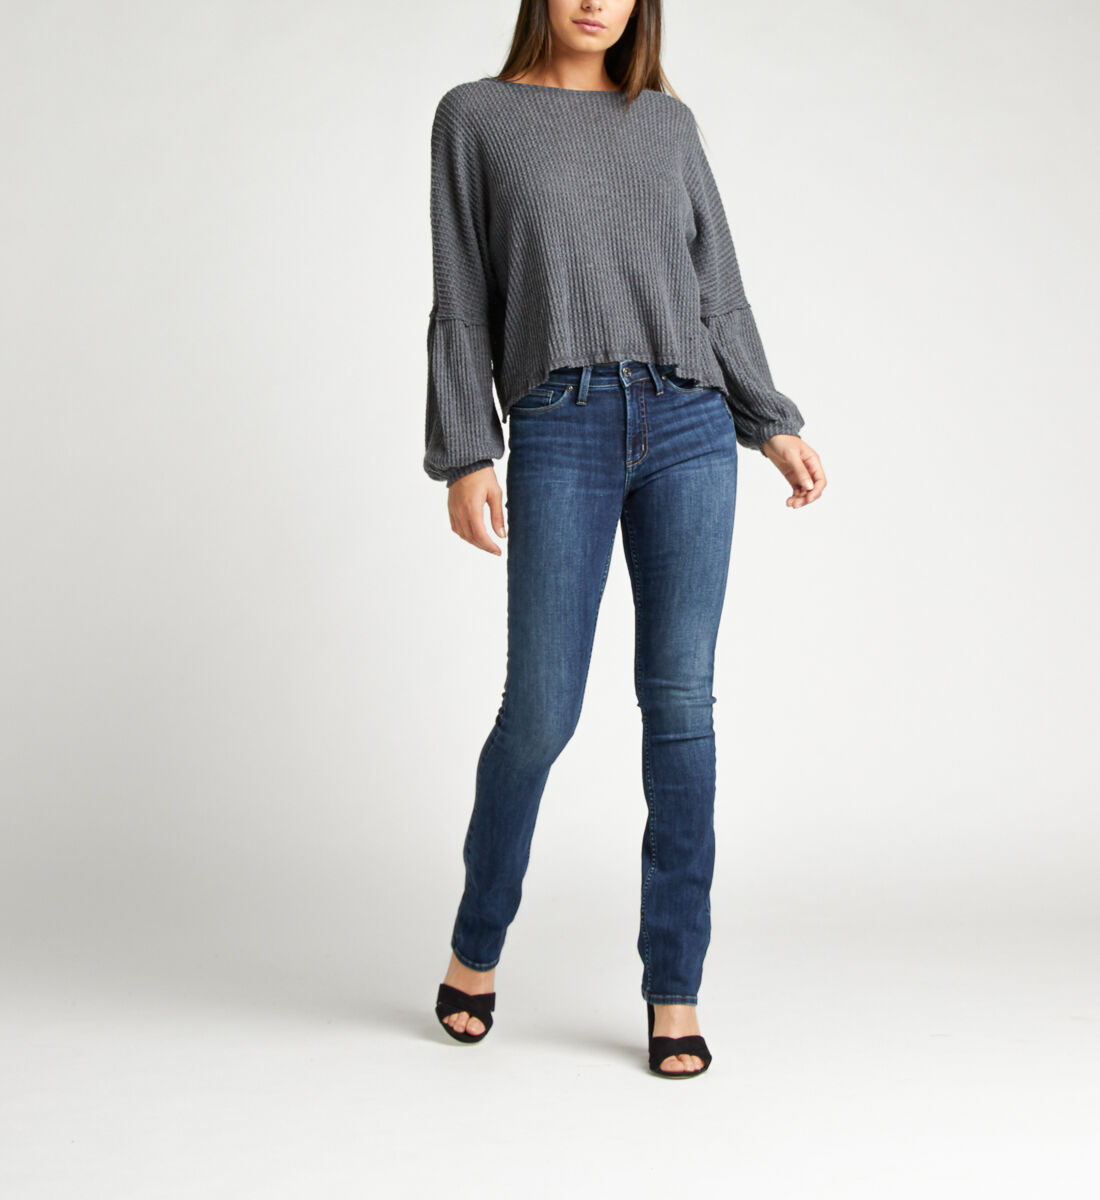 Most Wanted Mid Rise Skinny Bootcut Jeans Alt Image 1